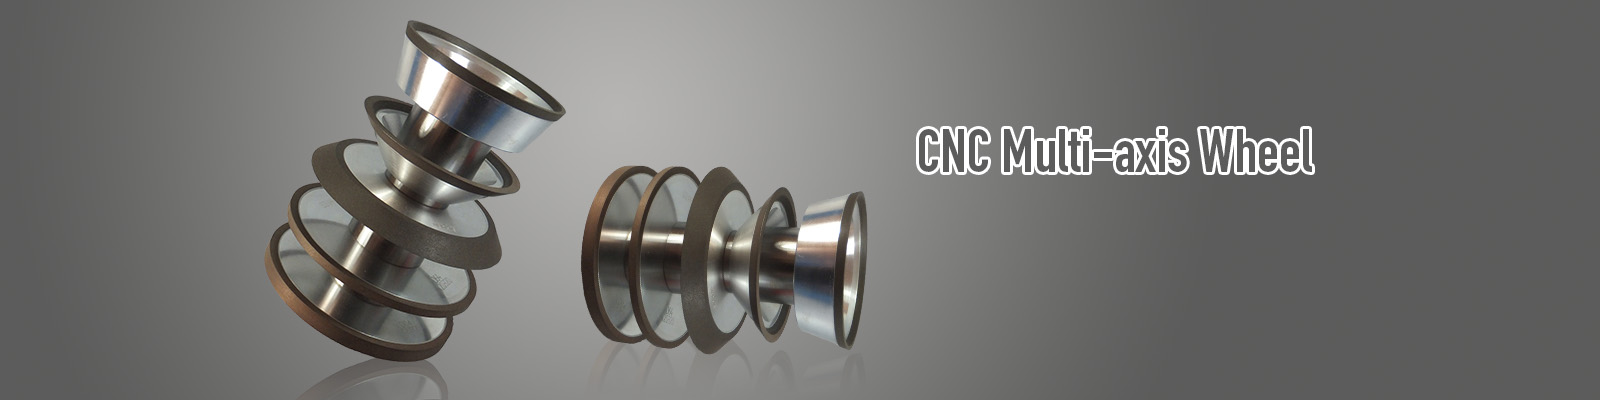 Diamond Grinding Wheels Used for CNC Fluting